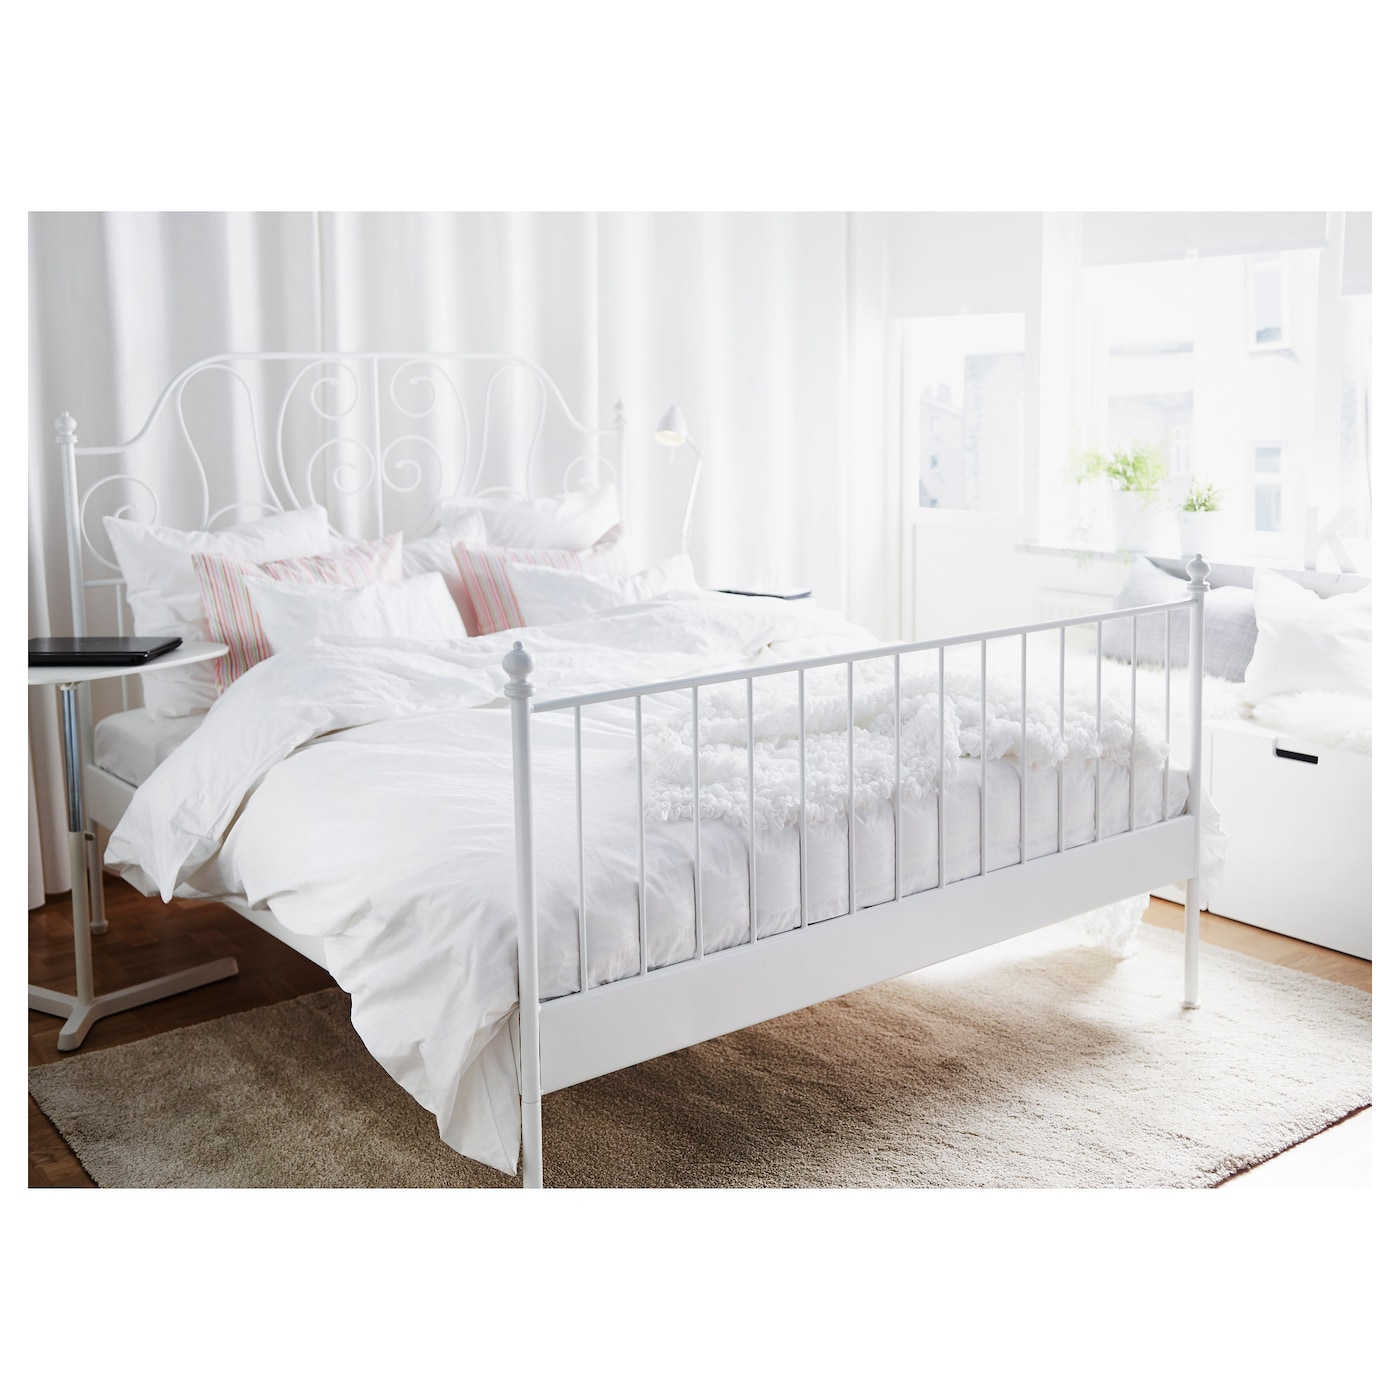 leirvik cadre de lit blanc 160x200 cm ikea. Black Bedroom Furniture Sets. Home Design Ideas